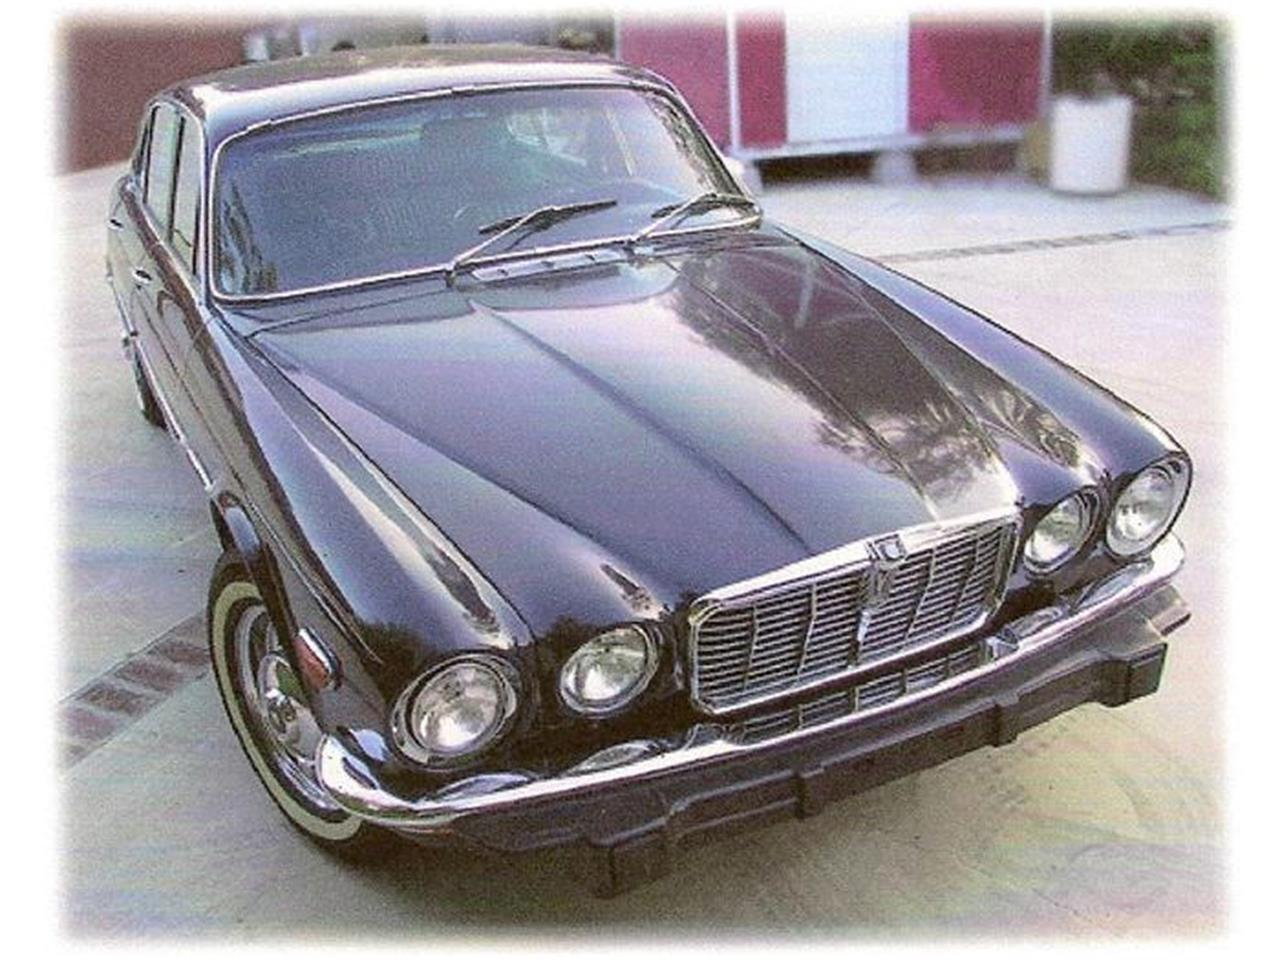 Large Picture of Classic '73 Jaguar XJ12 located in Illinois - $13,400.00 Offered by a Private Seller - 8FQM